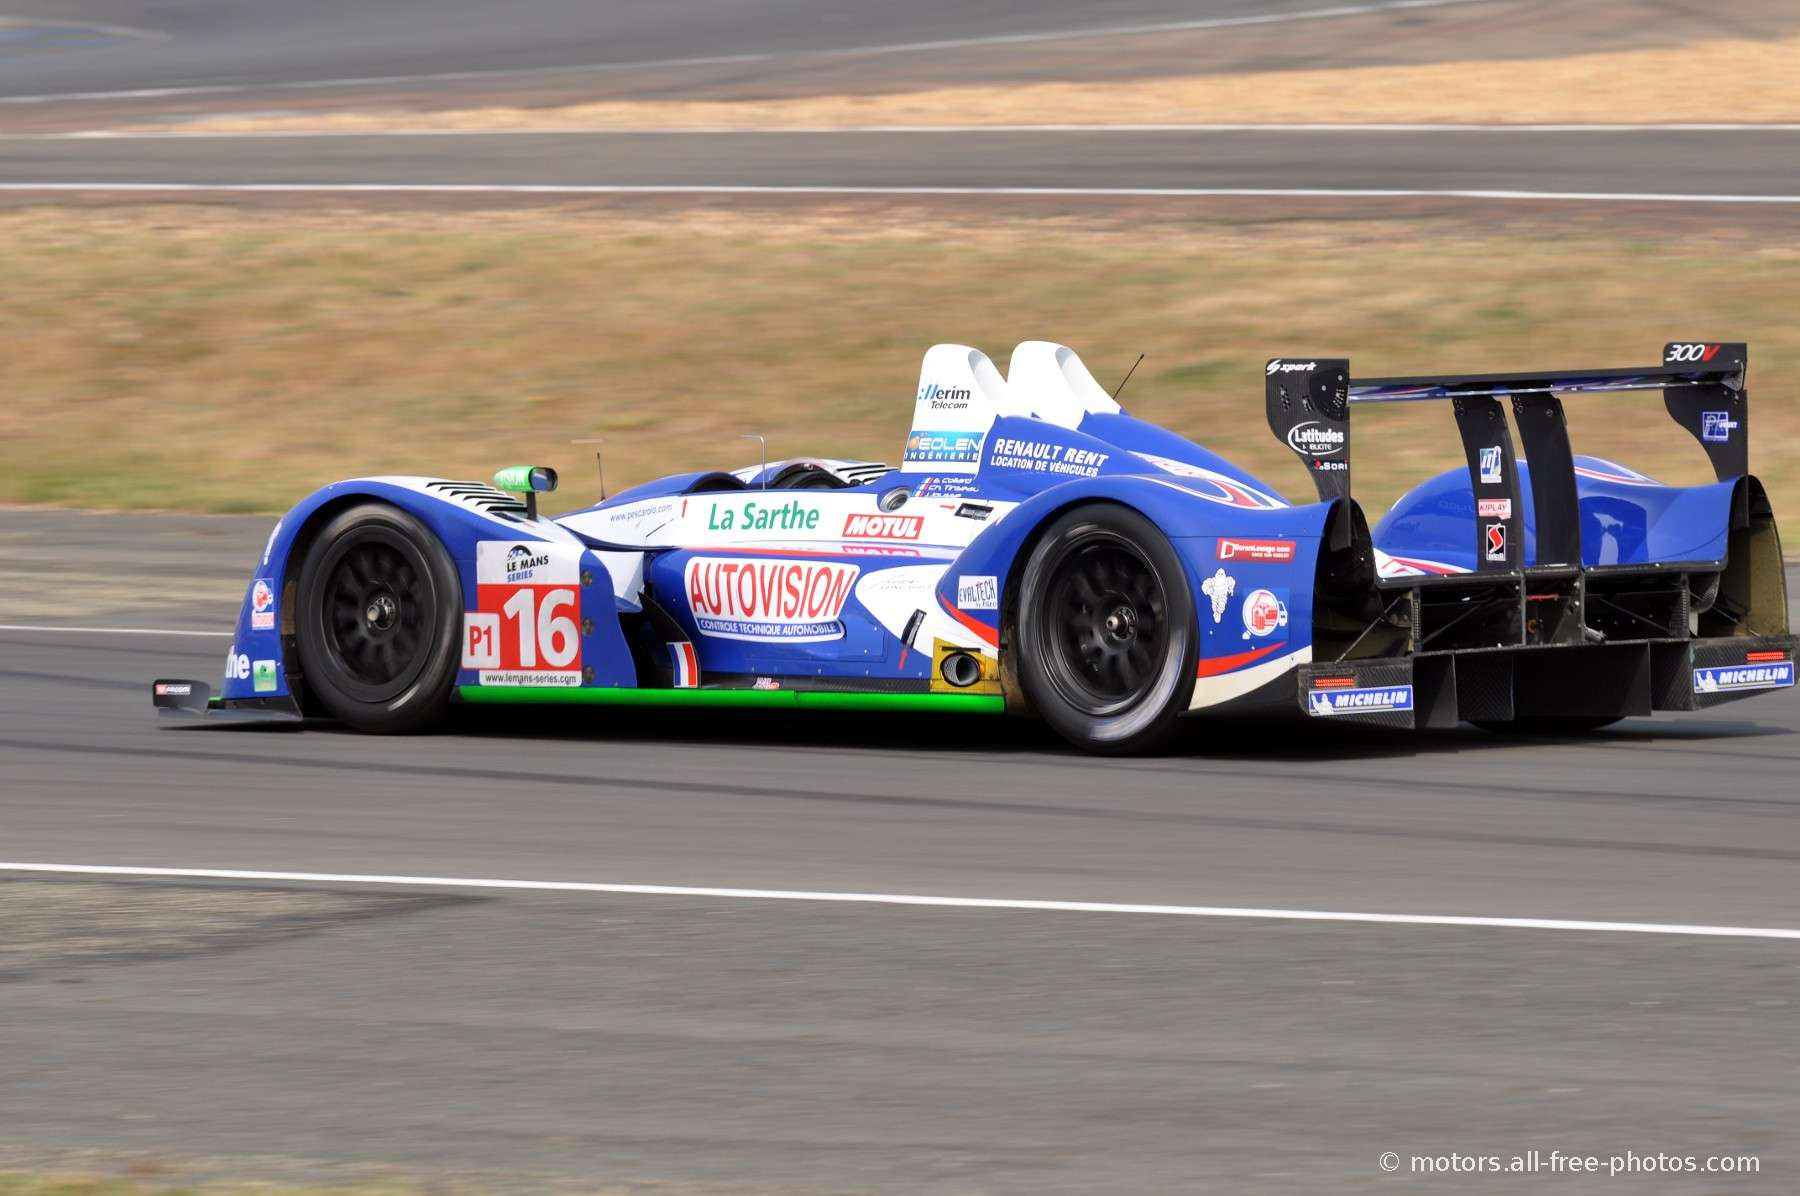 Pescarolo sport photo - 4